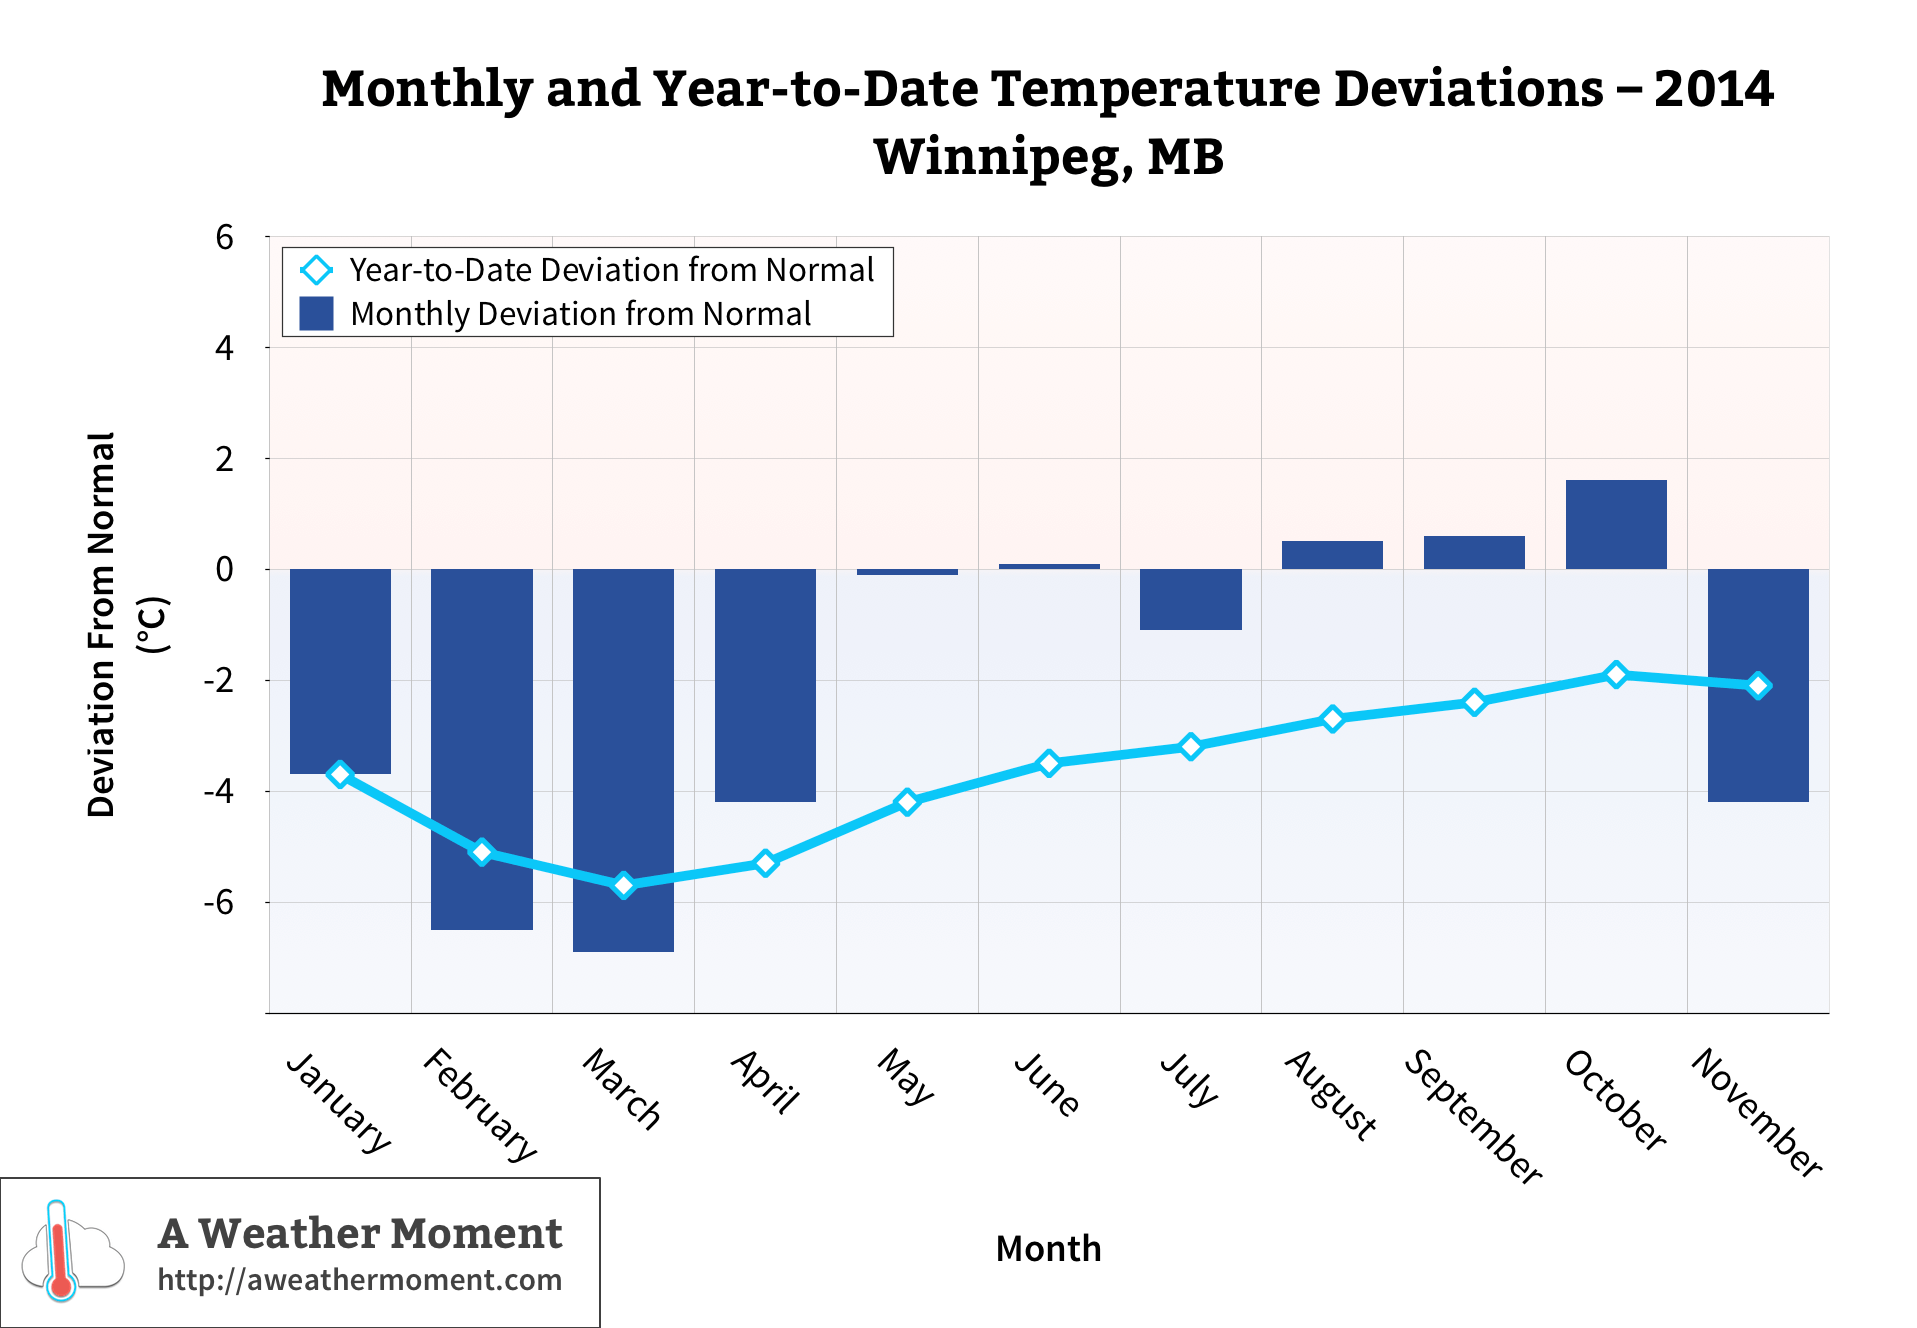 Monthly & year-to-date temperature deviations through Fall 2014 in Winnipeg, MB.